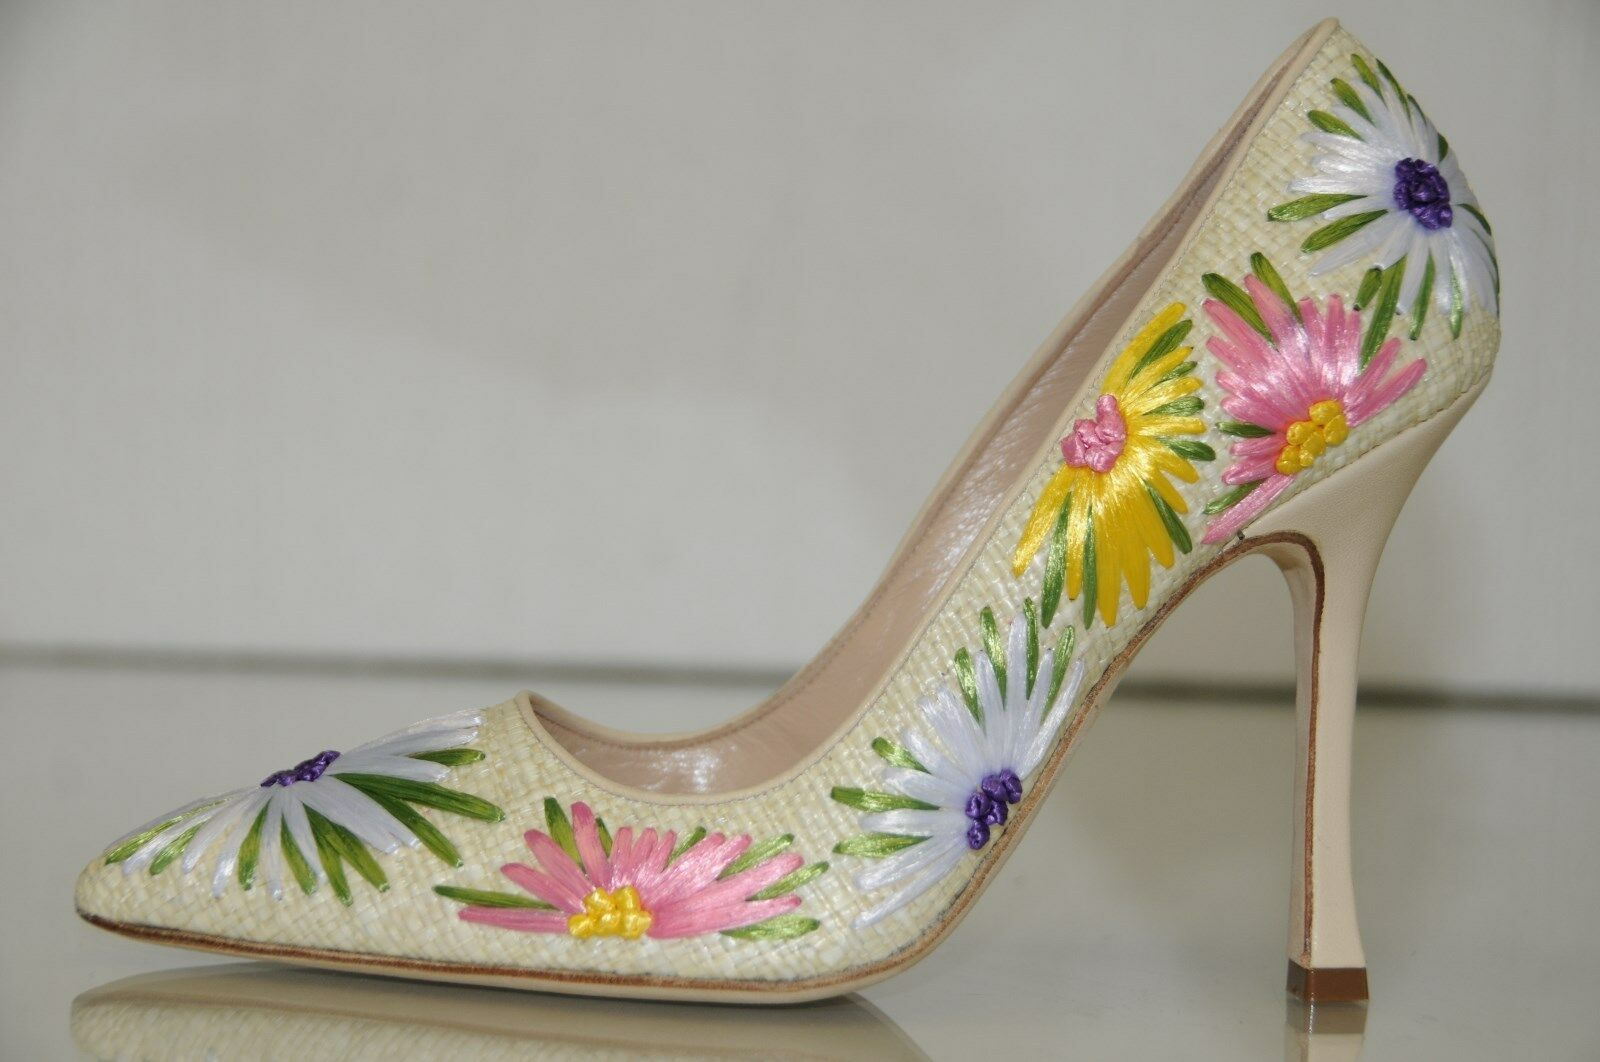 1895 New MANOLO BLAHNIK BB Newciofi Flower Rafia Nude Beige Yellow Pumps SHOES